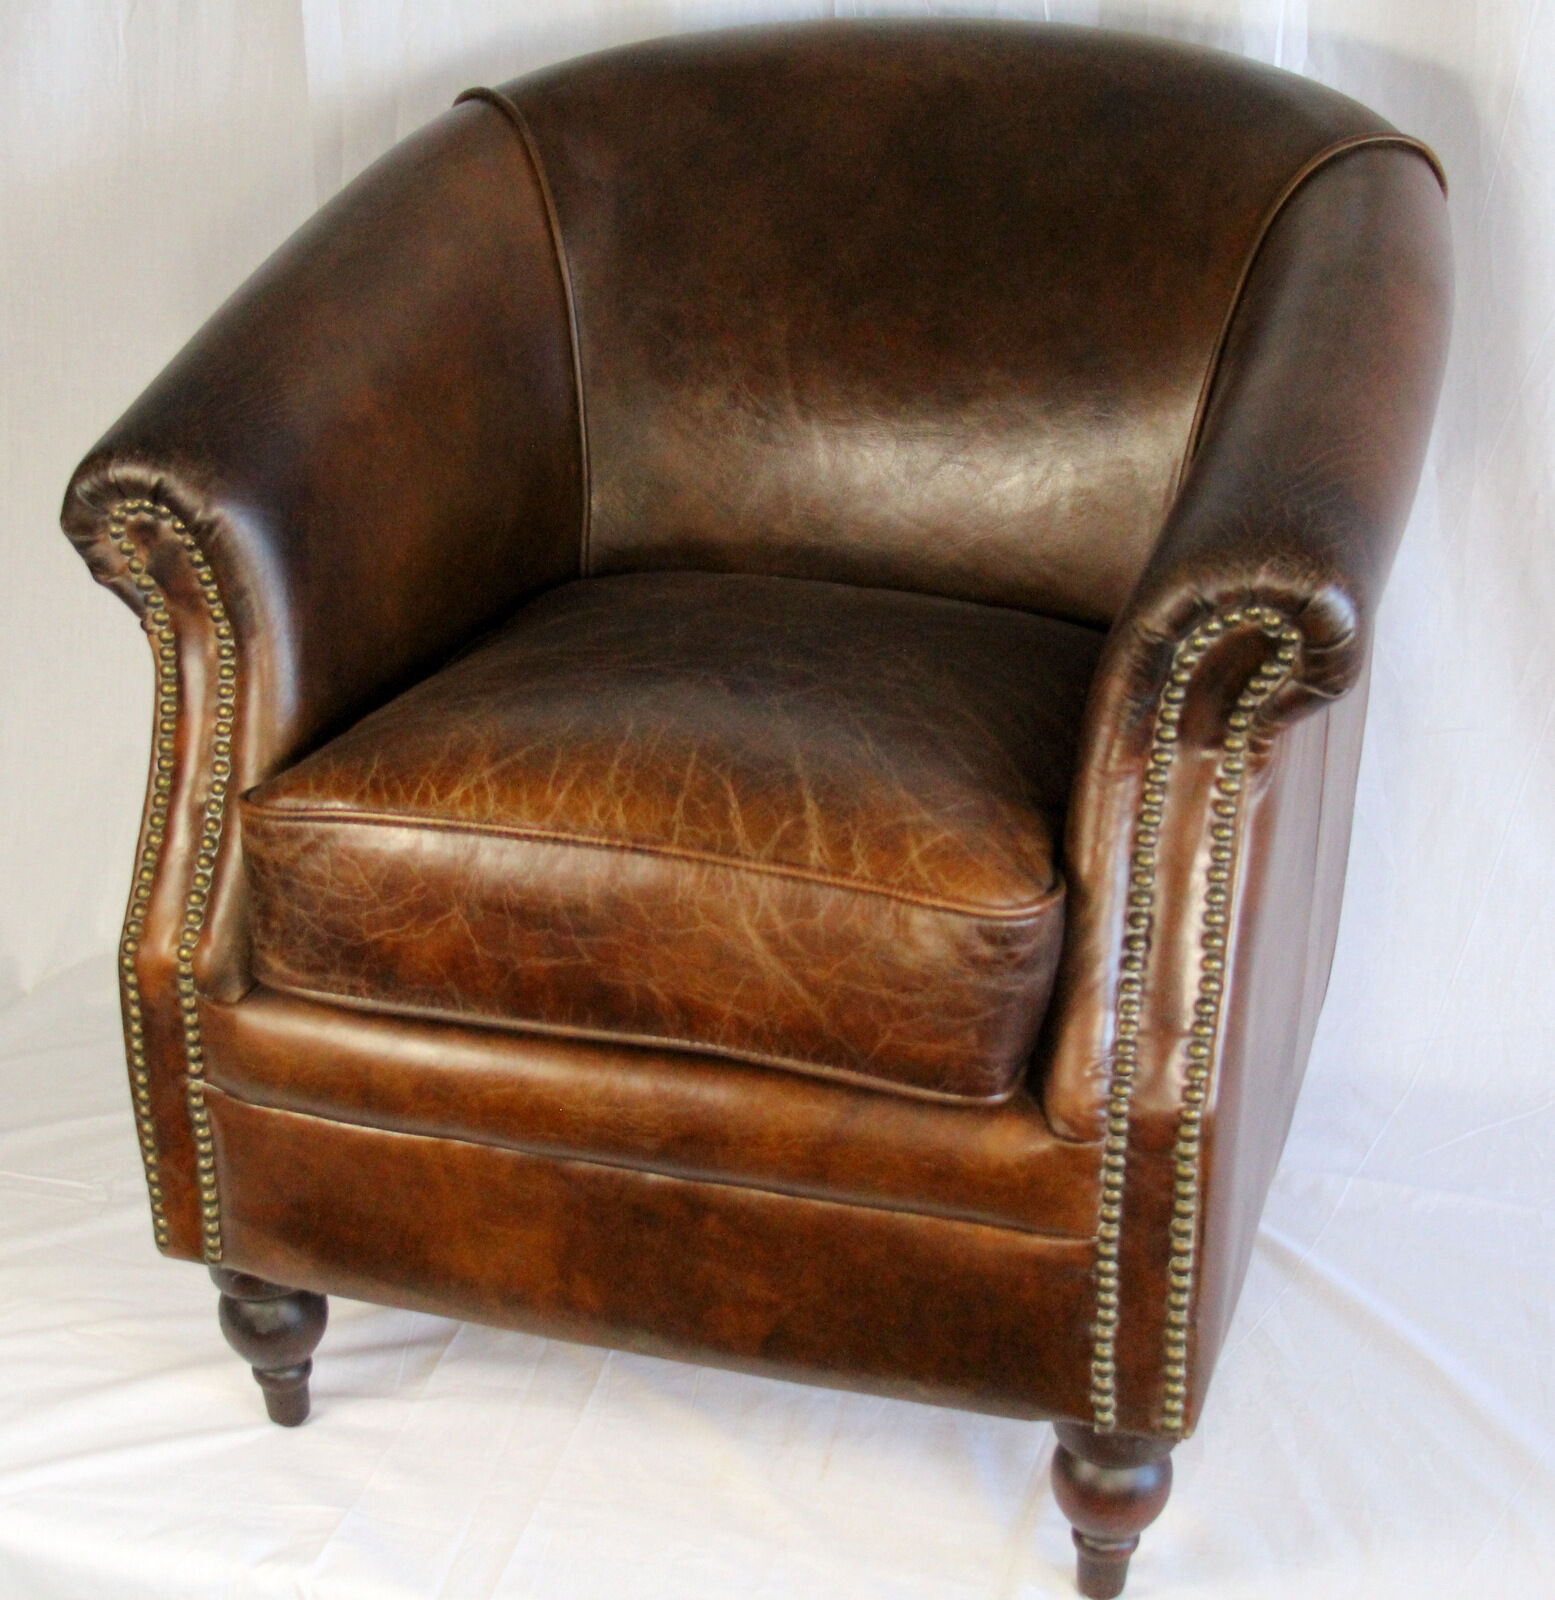 27 034 Wide Club Arm Chair Vintage Brown Cigar Italian